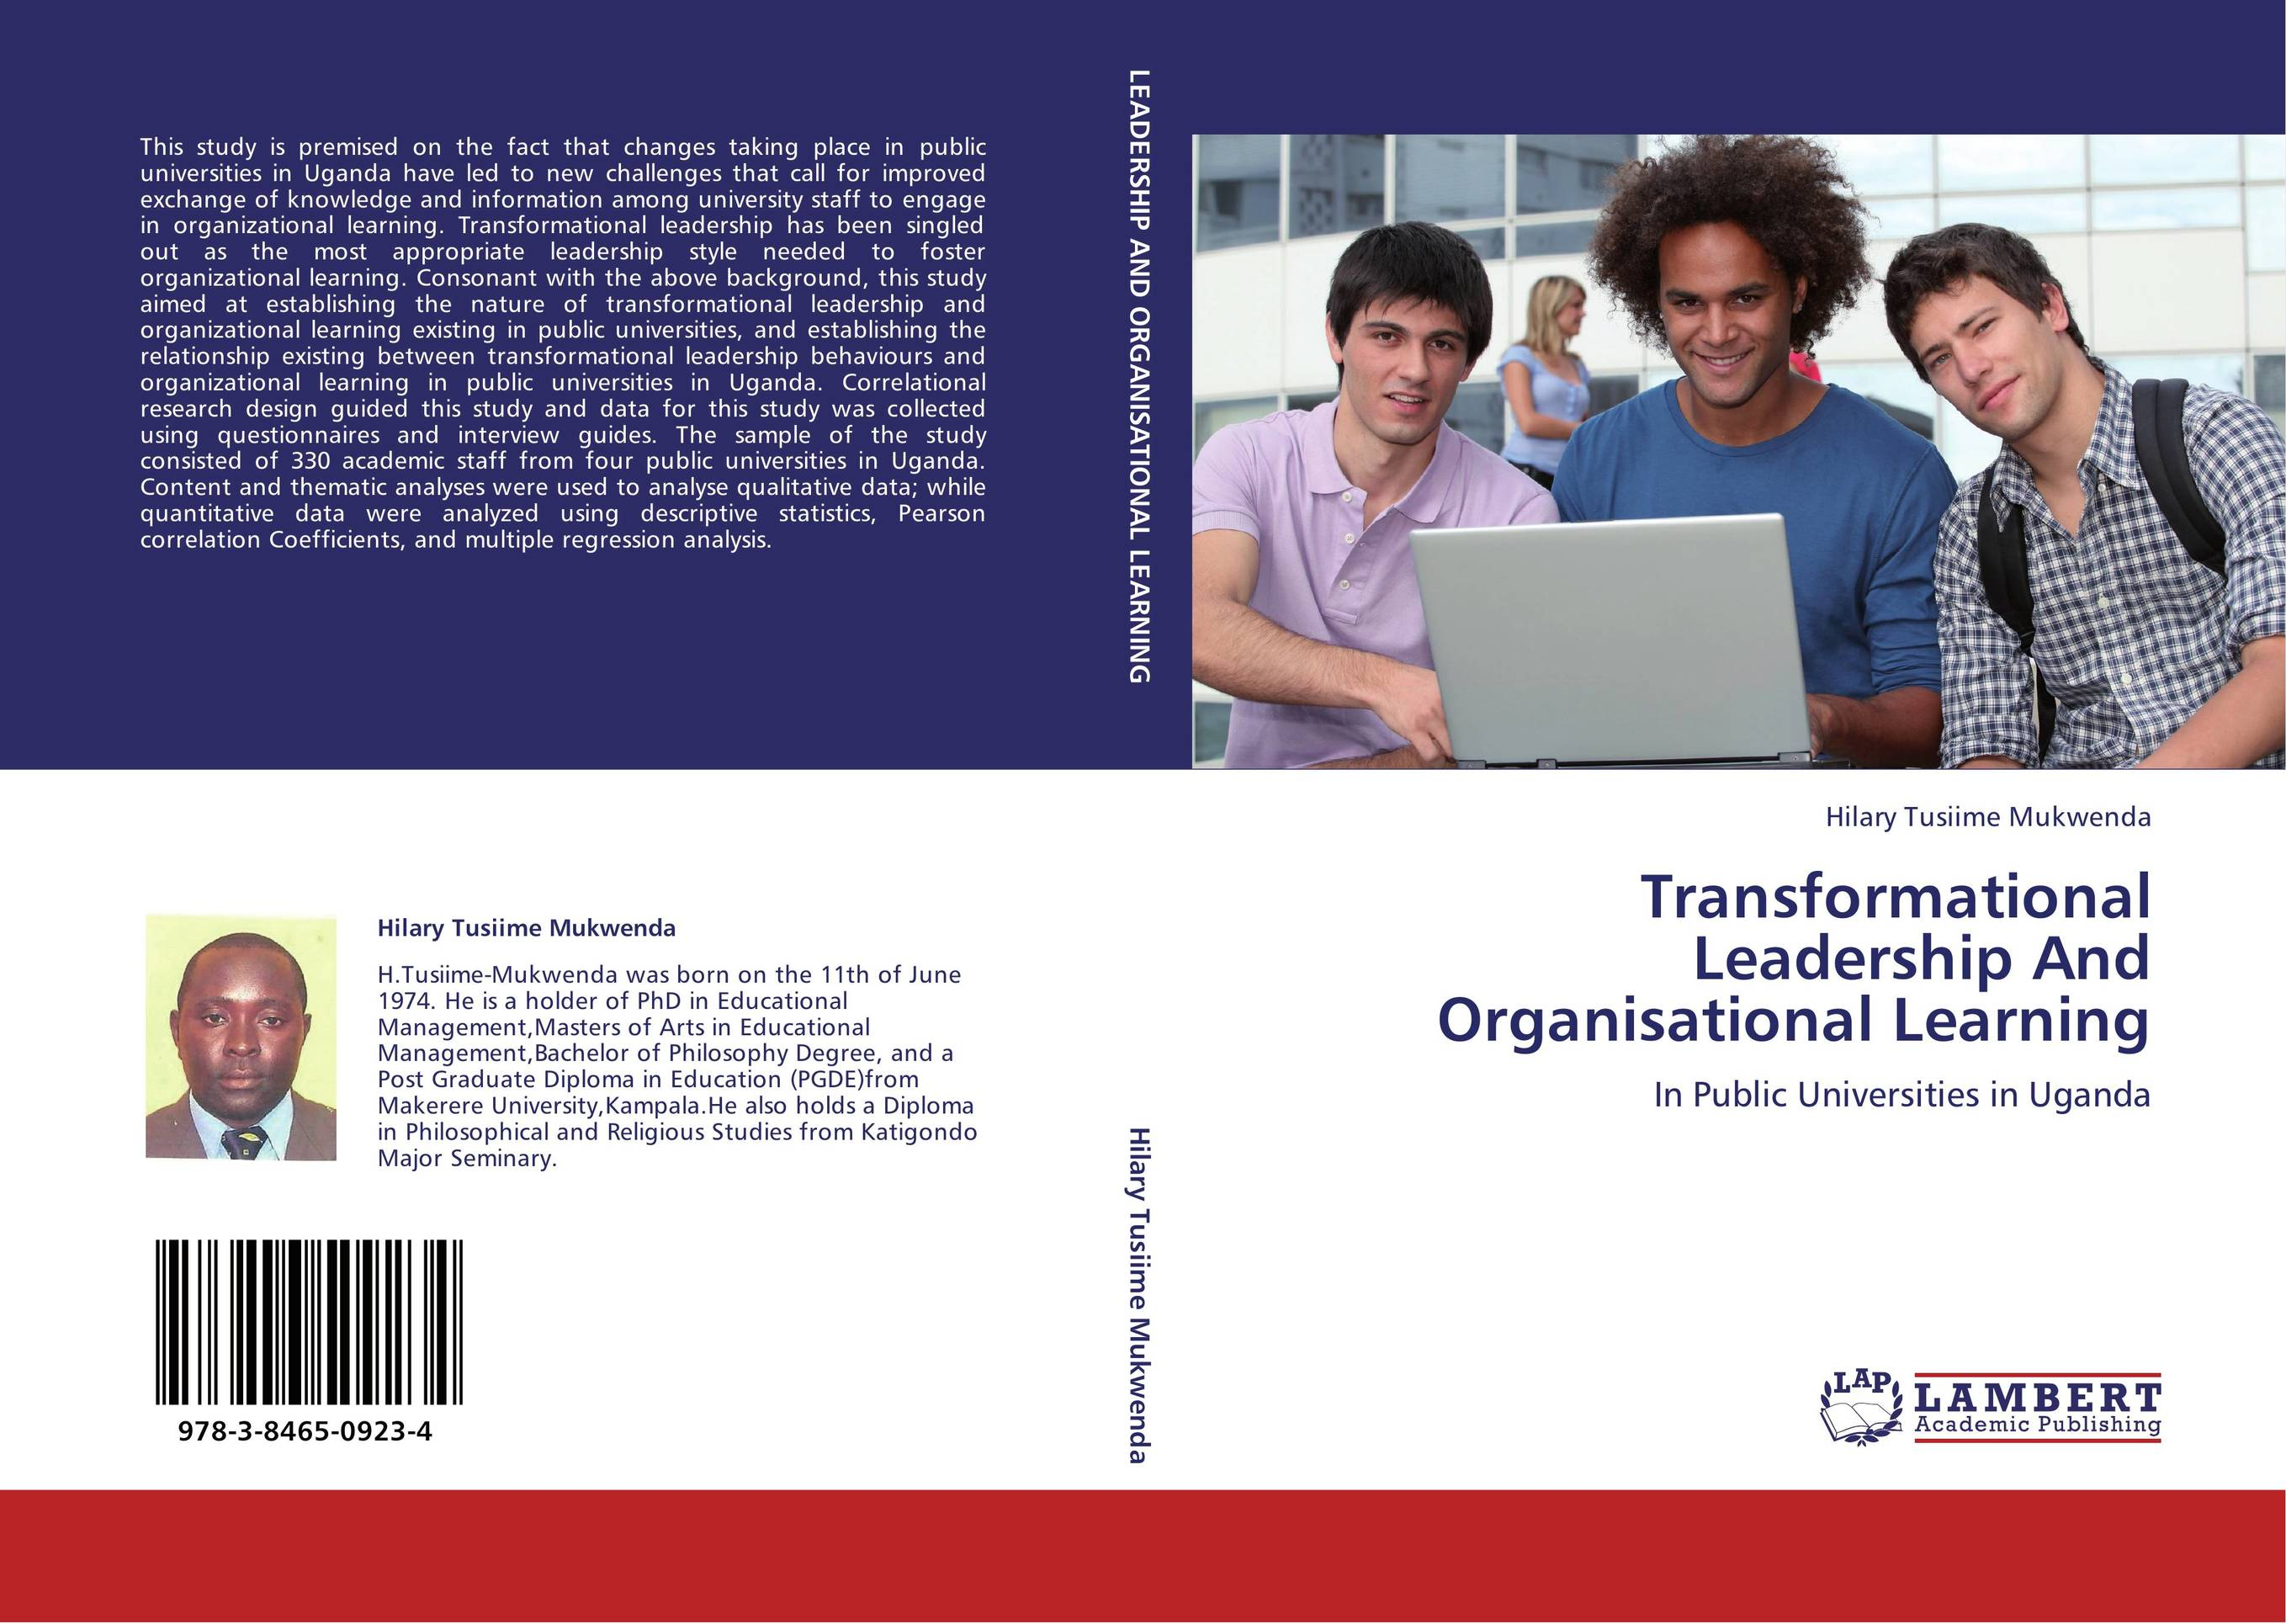 the relationship between transformational leadership and The relationship between transformational leadership and job satisfaction is partially mediated by employees' self-efficacy and team efficacy, ie a direct path exists between transformational leadership and job satisfaction.